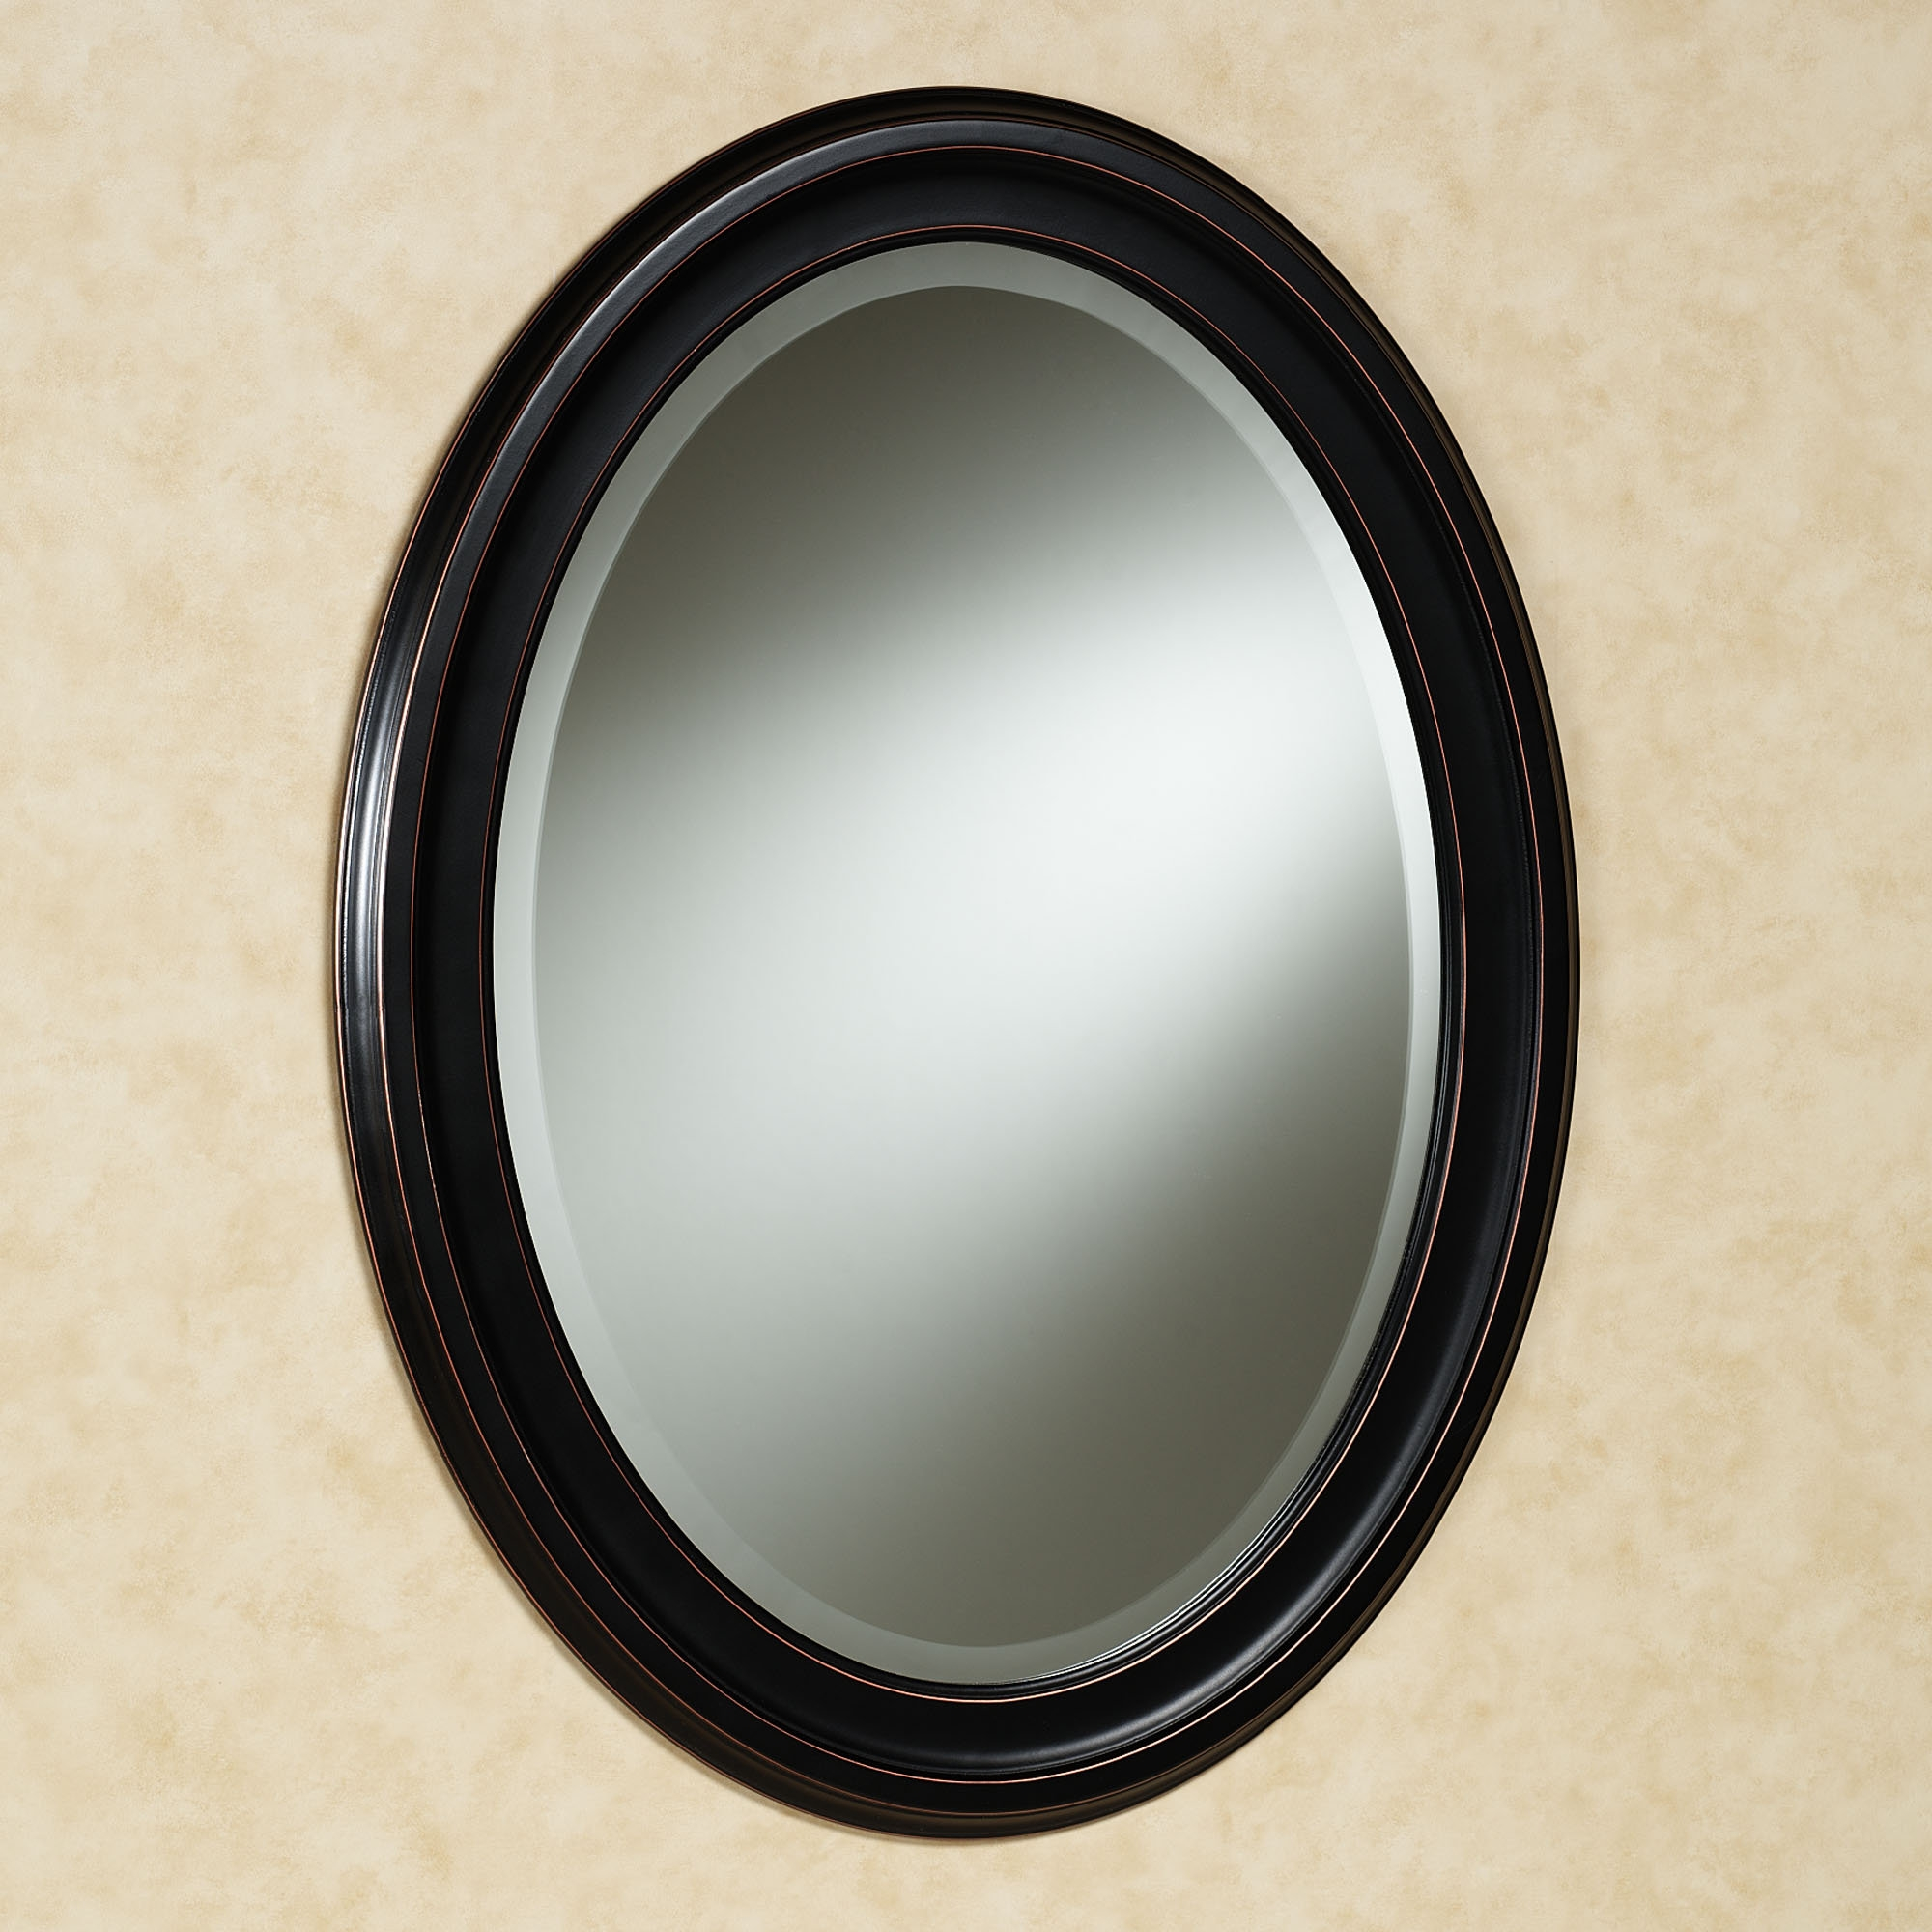 Oval Wall Mirror Black Oval Wall Mirror Black oval wall mirrors black oval wall clock black oval wall mirror 2000 X 2000